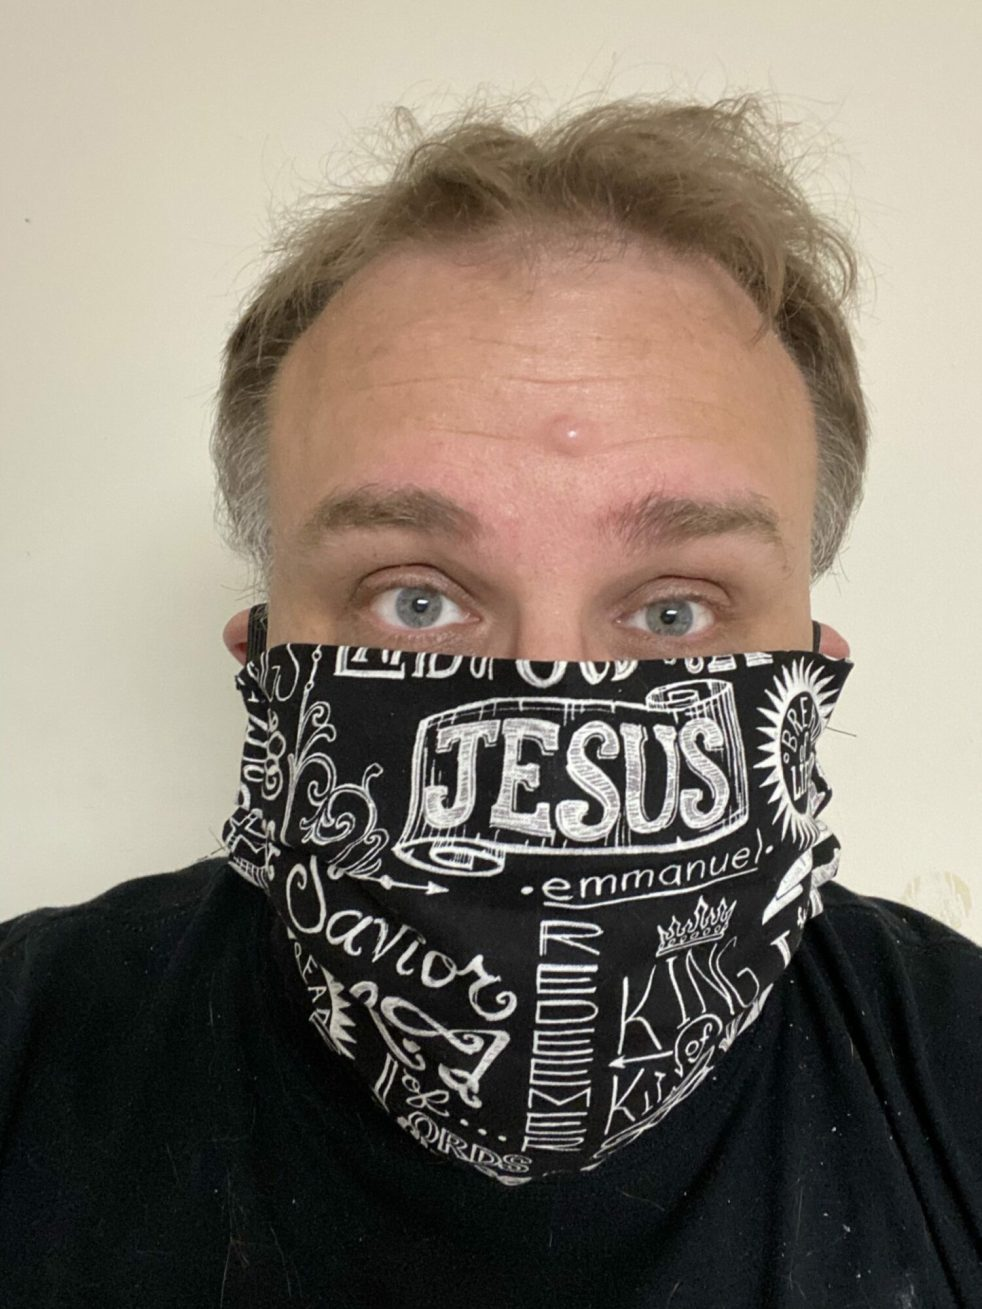 Jesus Mask I made - Wearing a face mask is not showing fear - It actually is the opposite. It shows your concern for others around you! #FaceMask